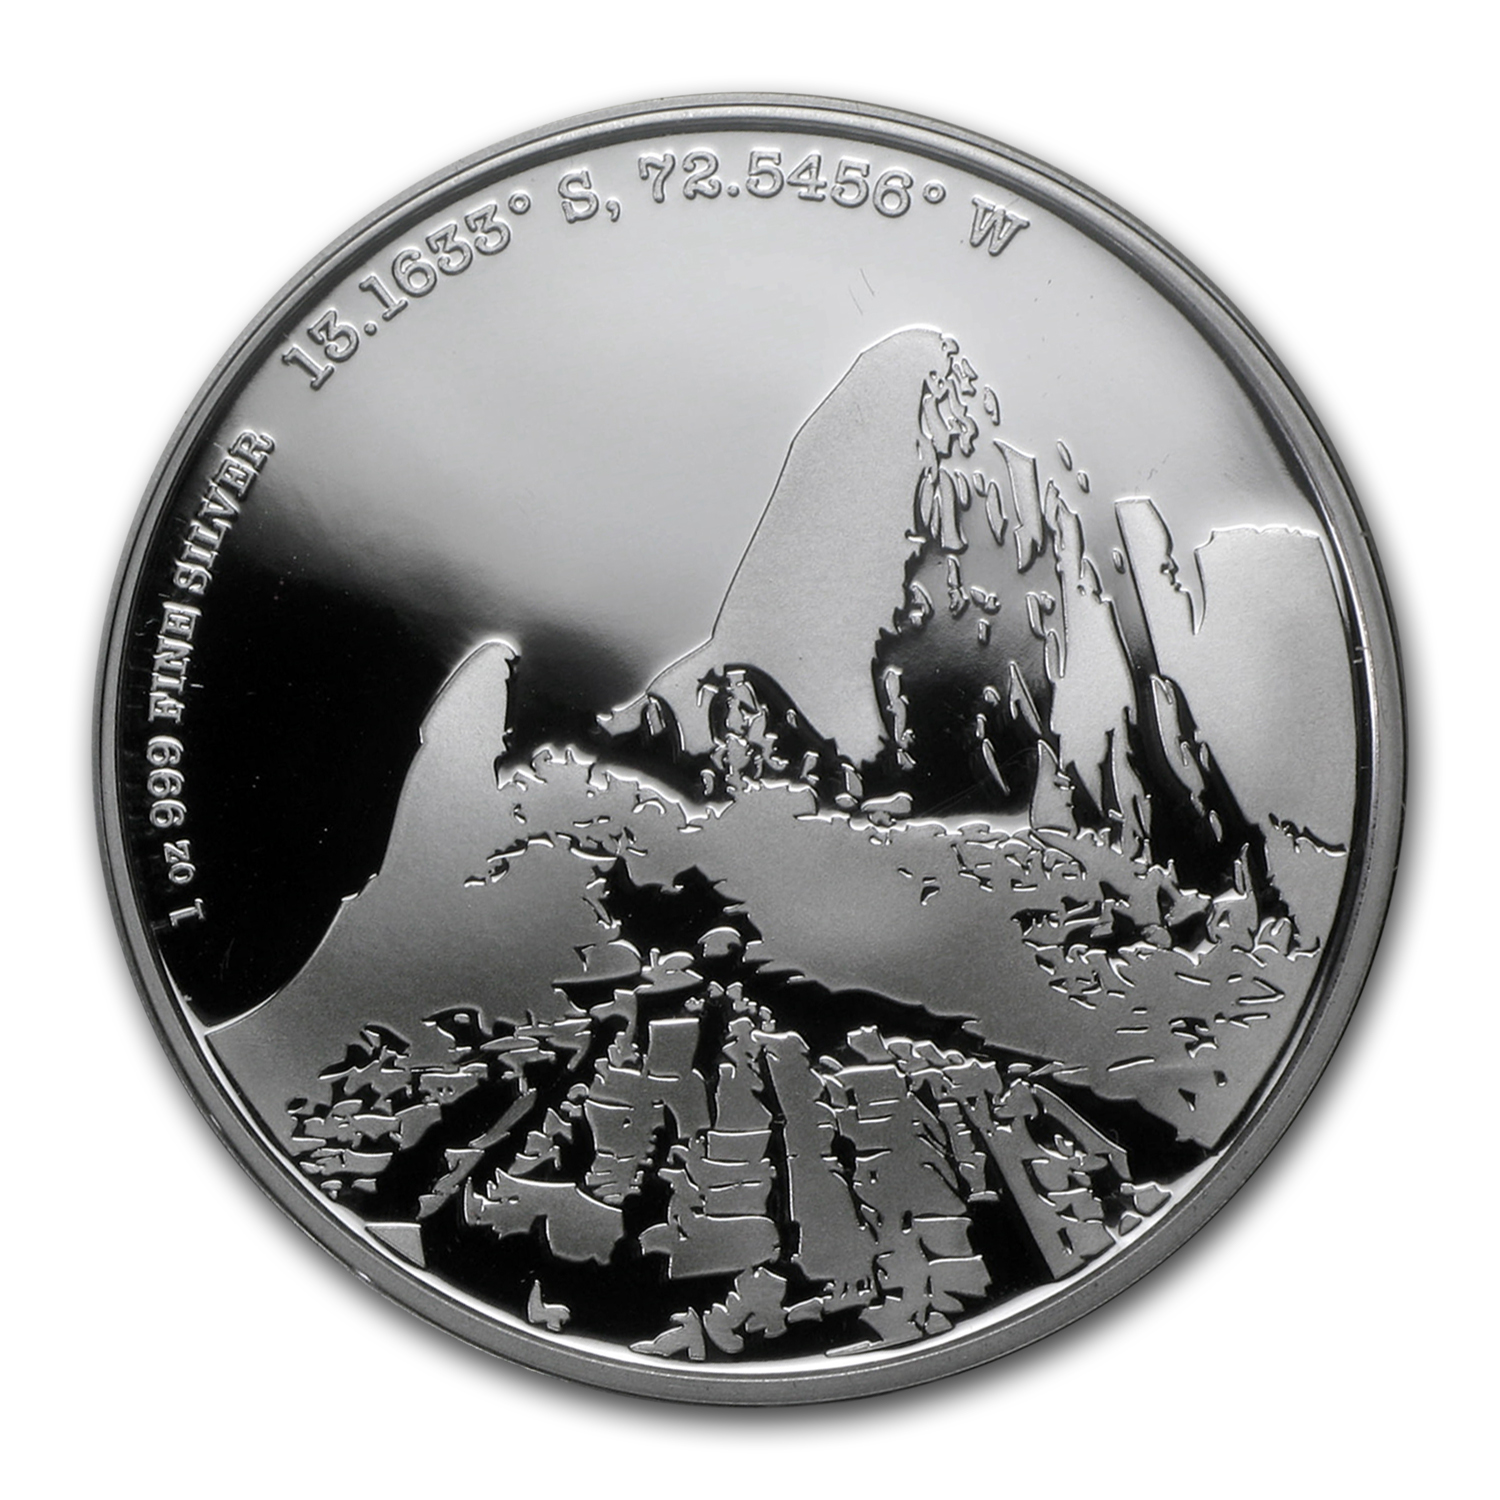 2015 Niue Proof 1 oz Silver Forgotten Cities Machu Picchu